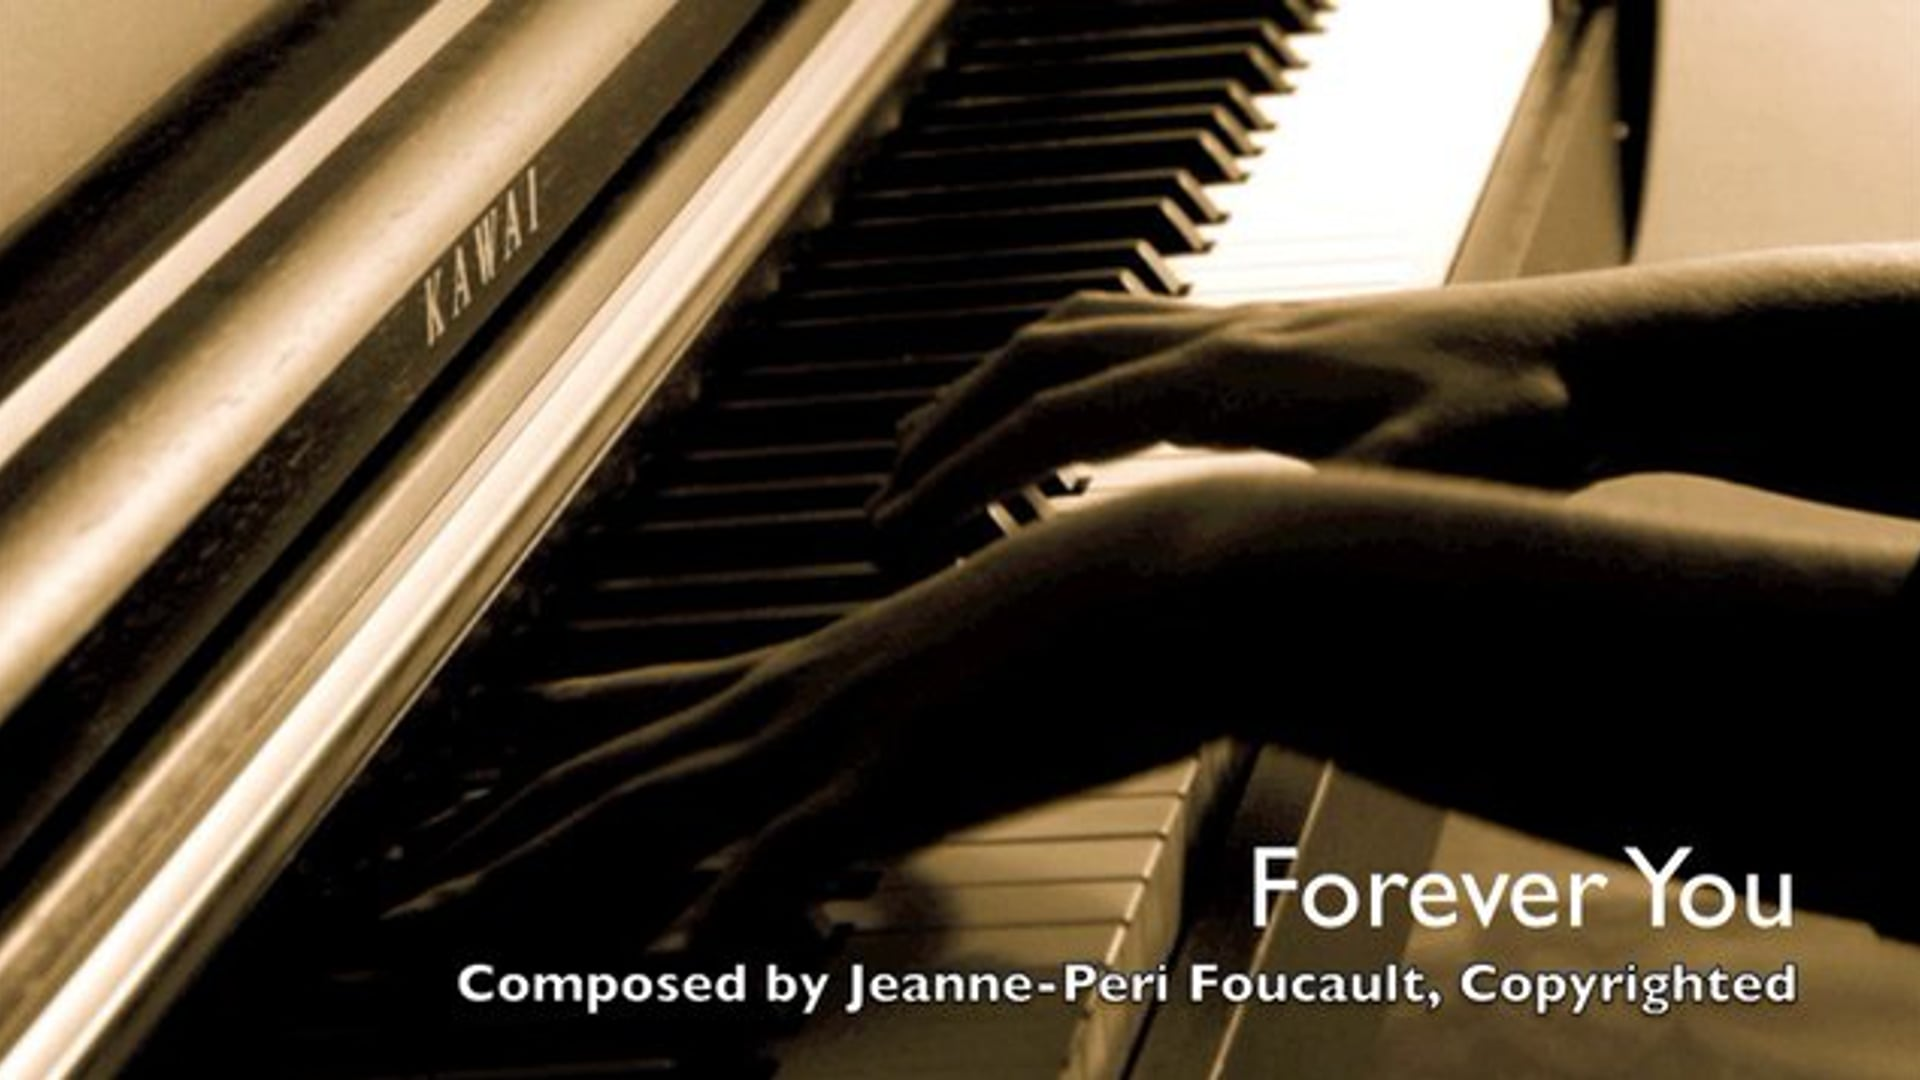 Forever You - 2010